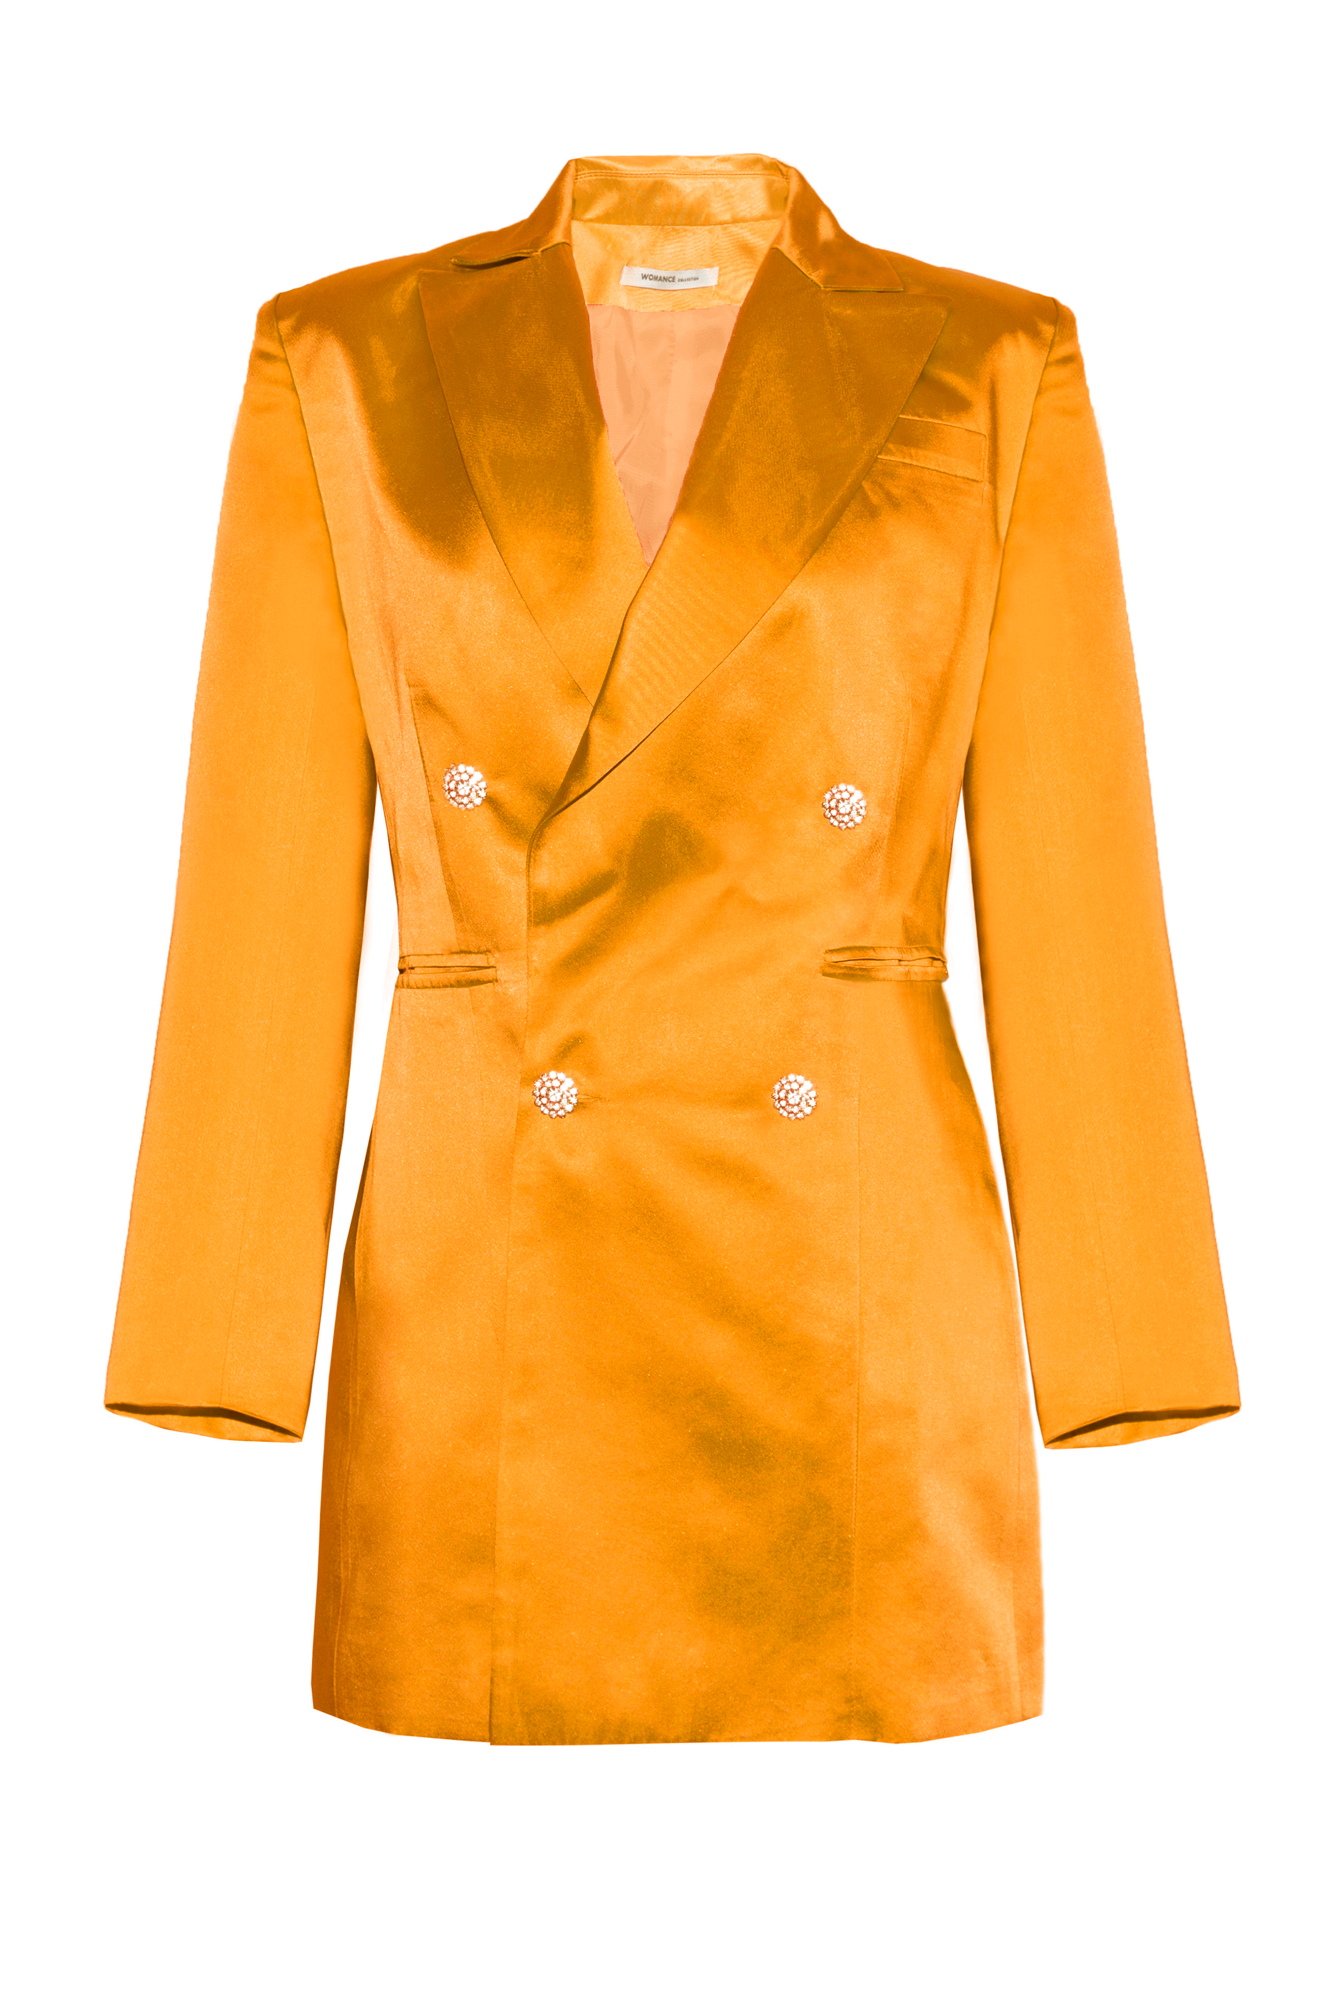 Chaqueta vestido naranja The Tuxedo orange blazer smoking